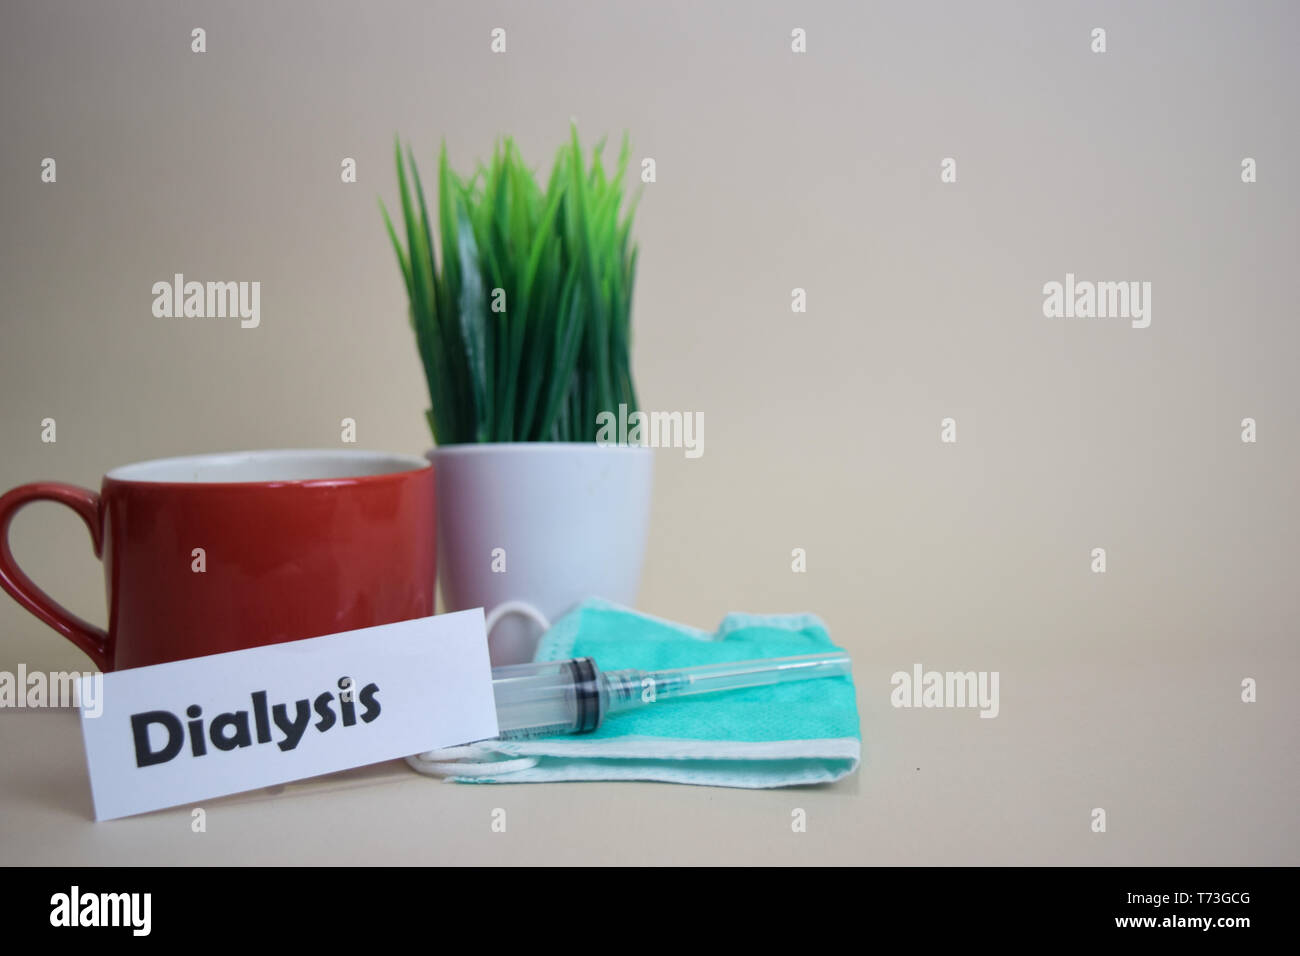 Dialysis text, grass pot, coffee cup, syringe, and face green mask. Healtcare/Medical and Business concept - Stock Image